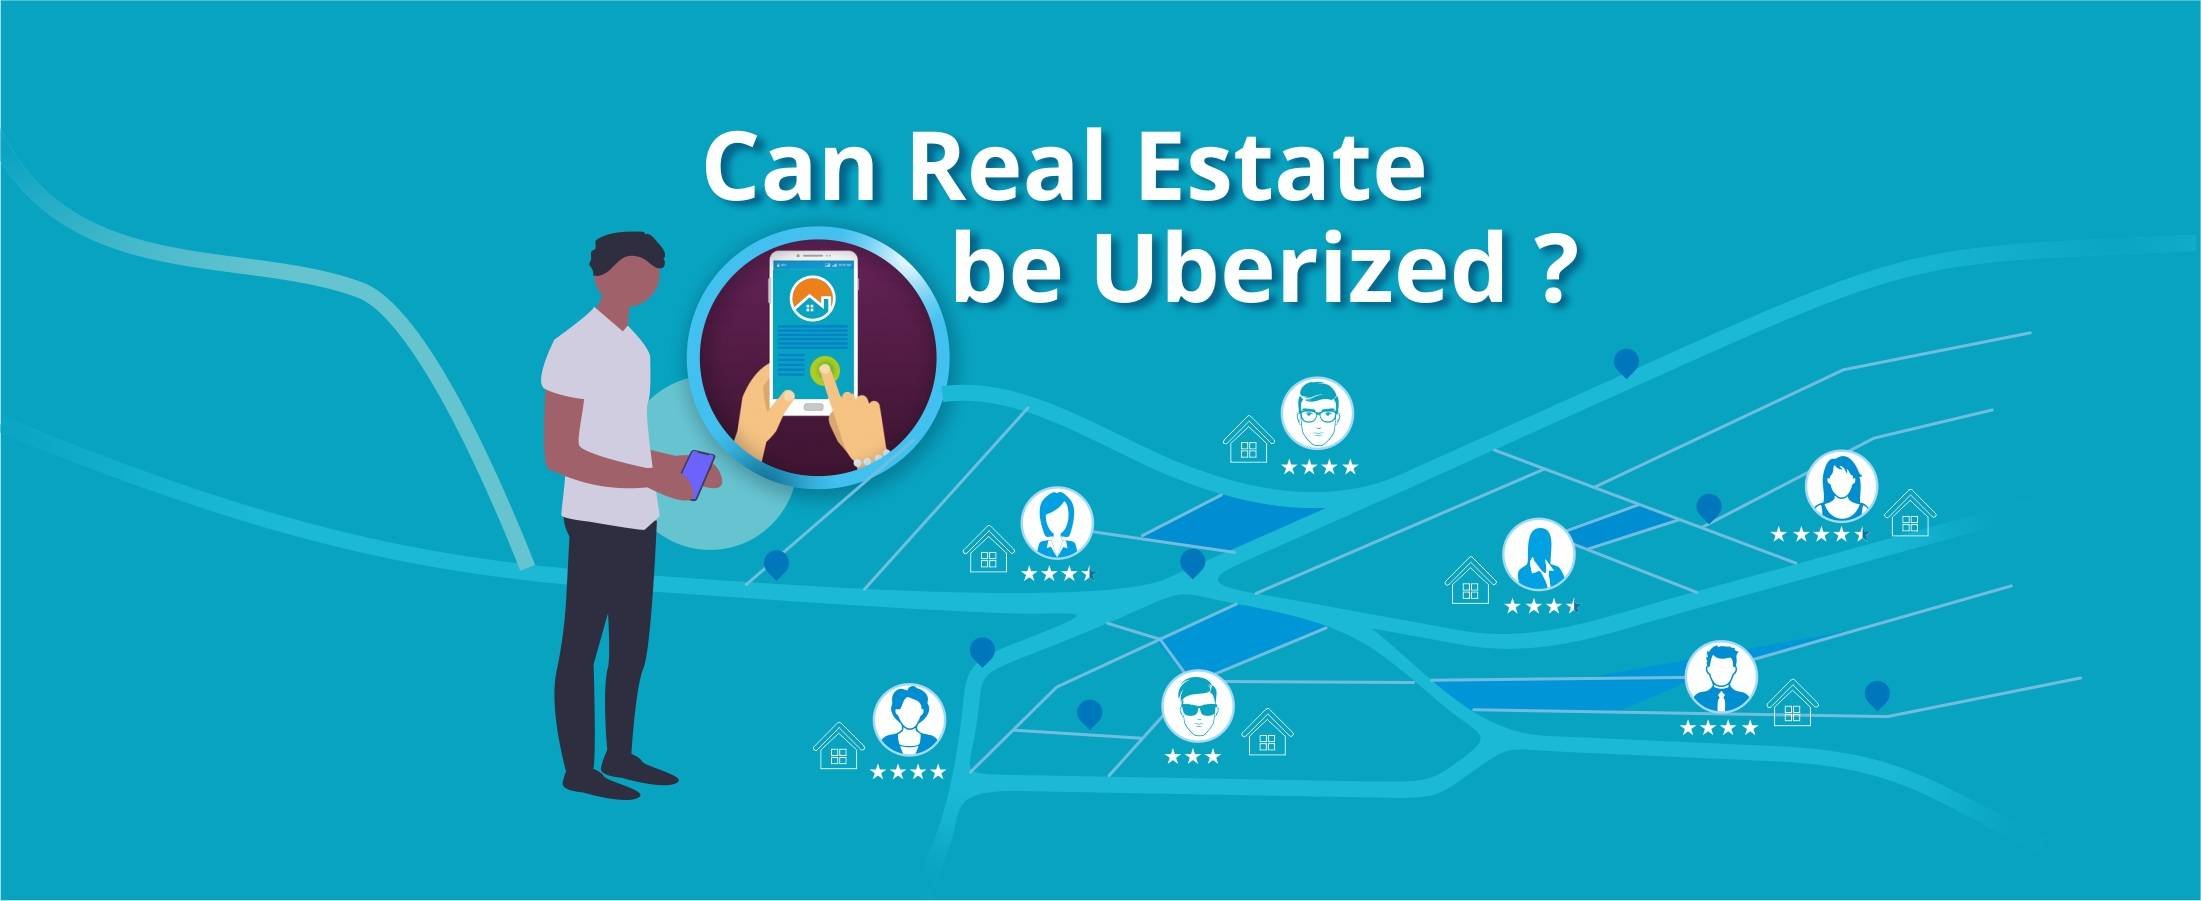 Can Real Estate be Uberized?